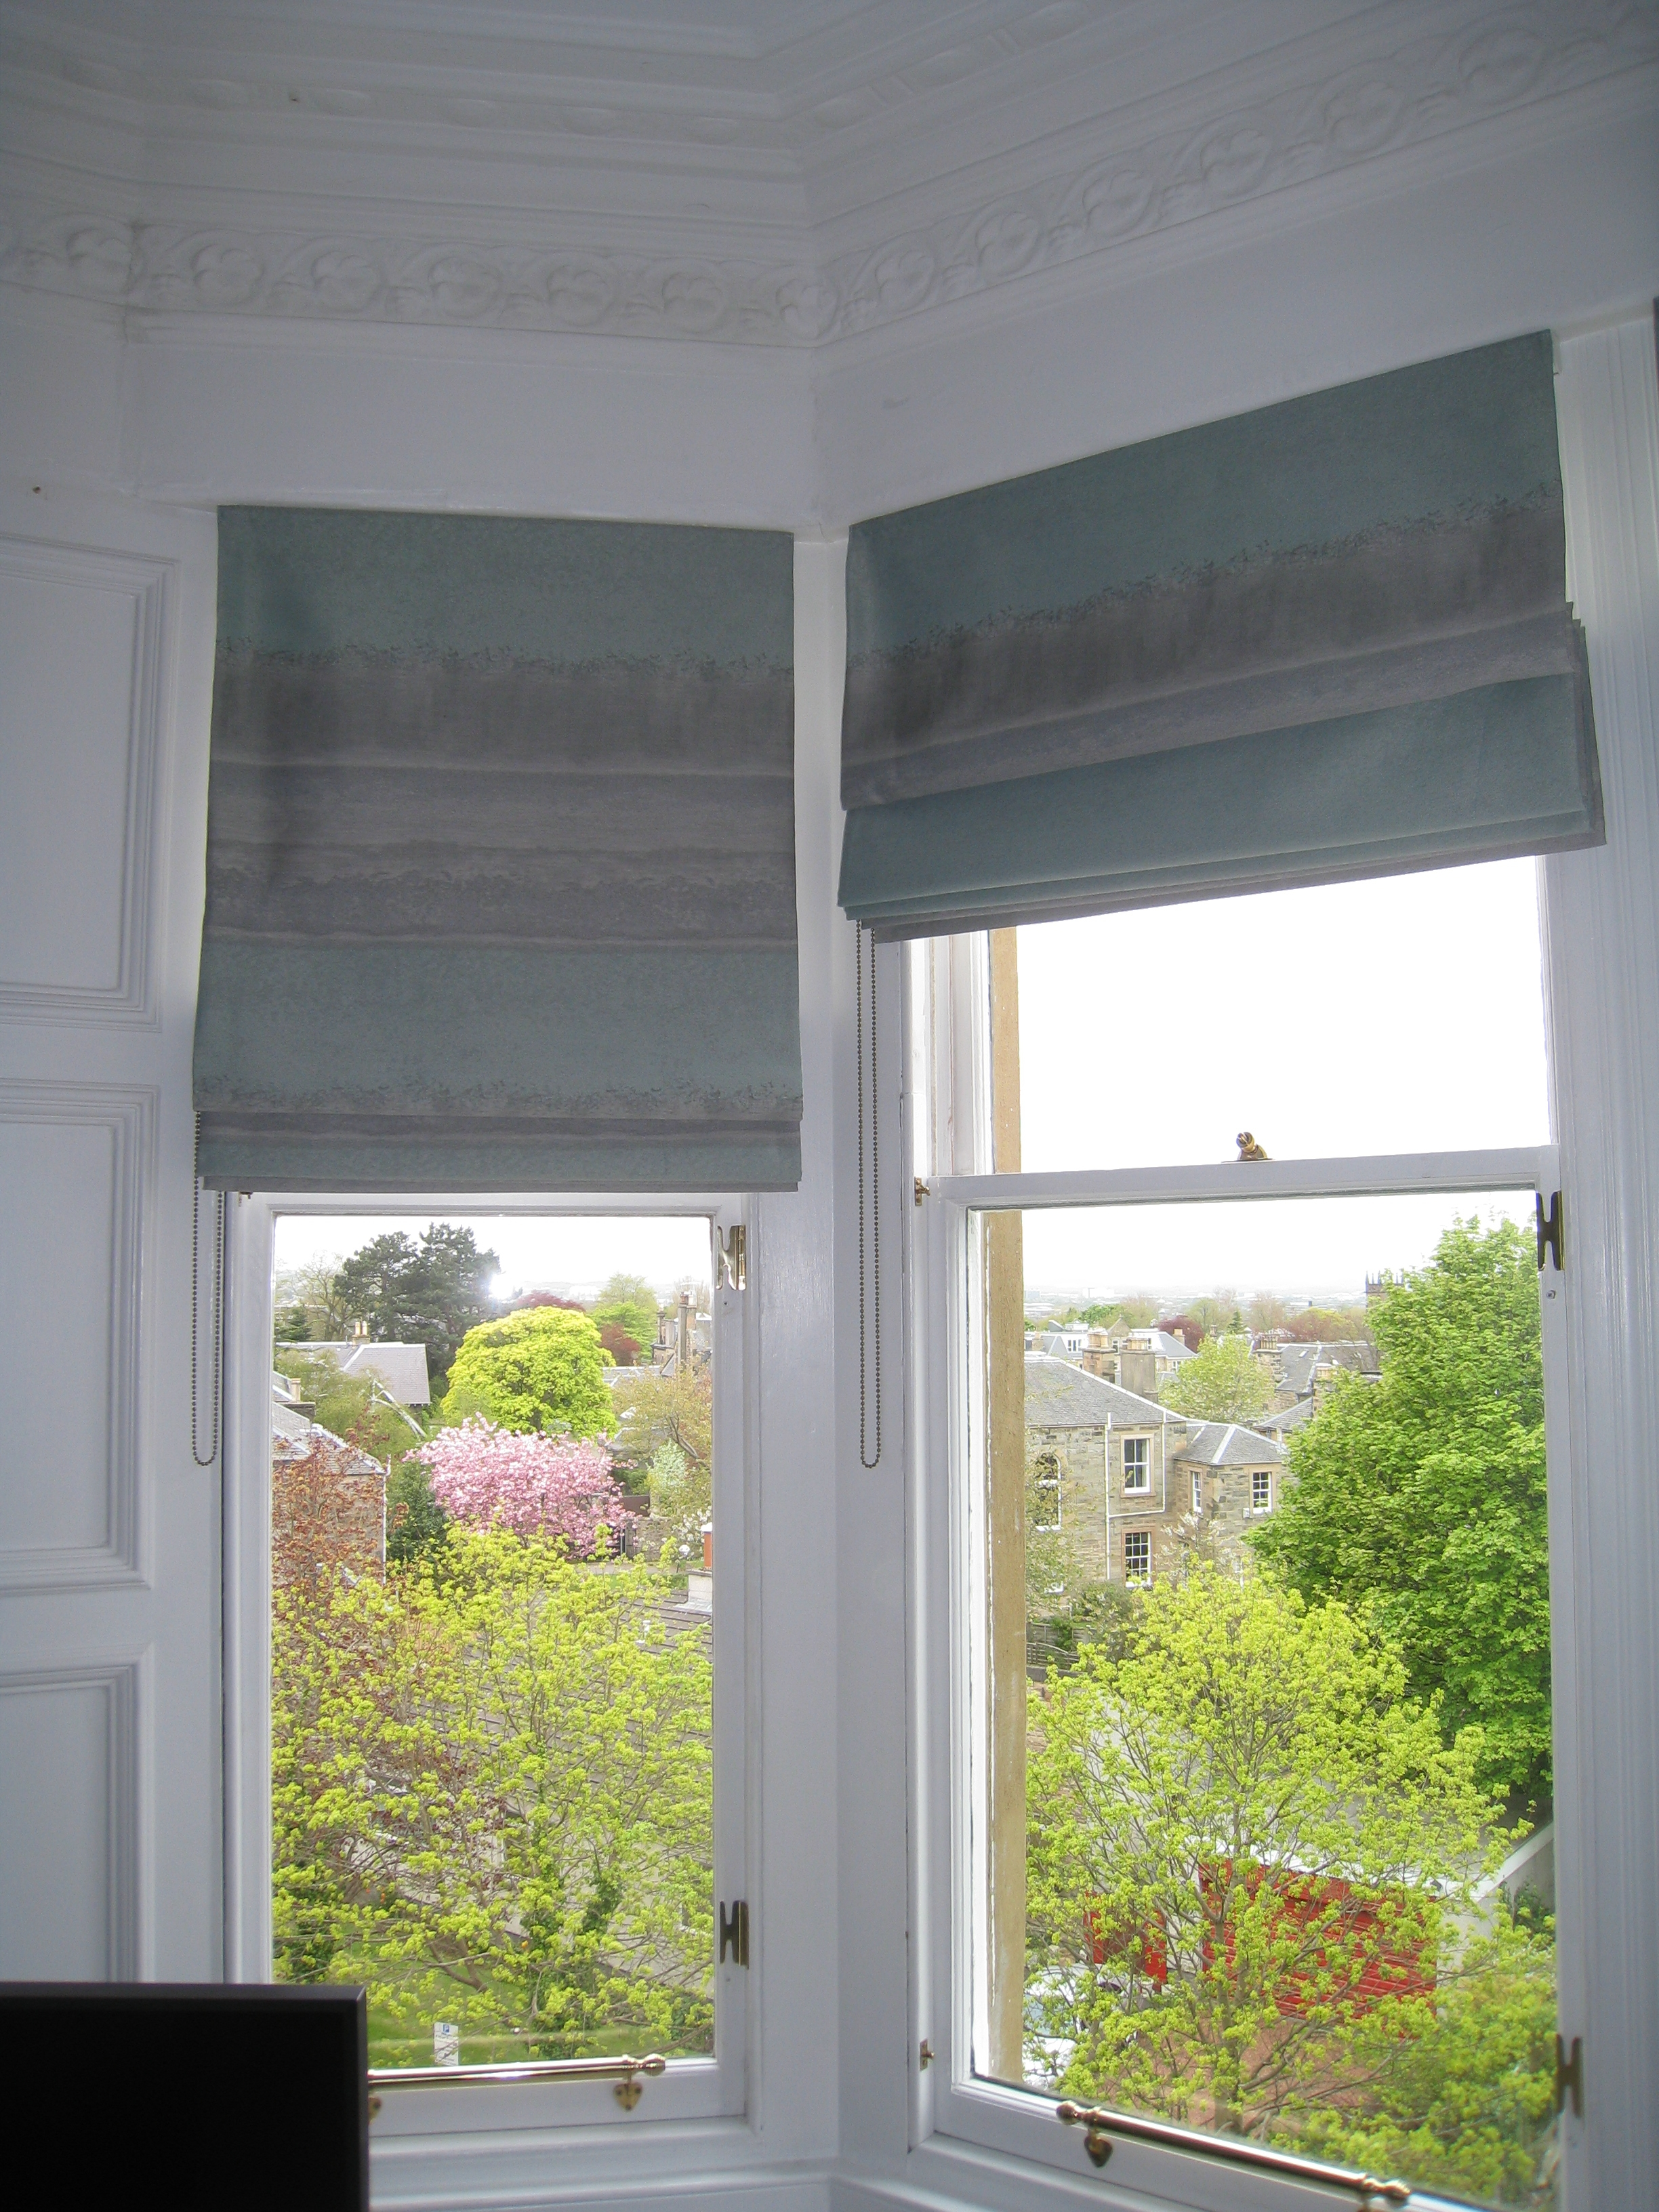 Roman Blinds For Bay Windows Ines Interiors Inside Roman Blinds On Bay Windows (Image 12 of 15)